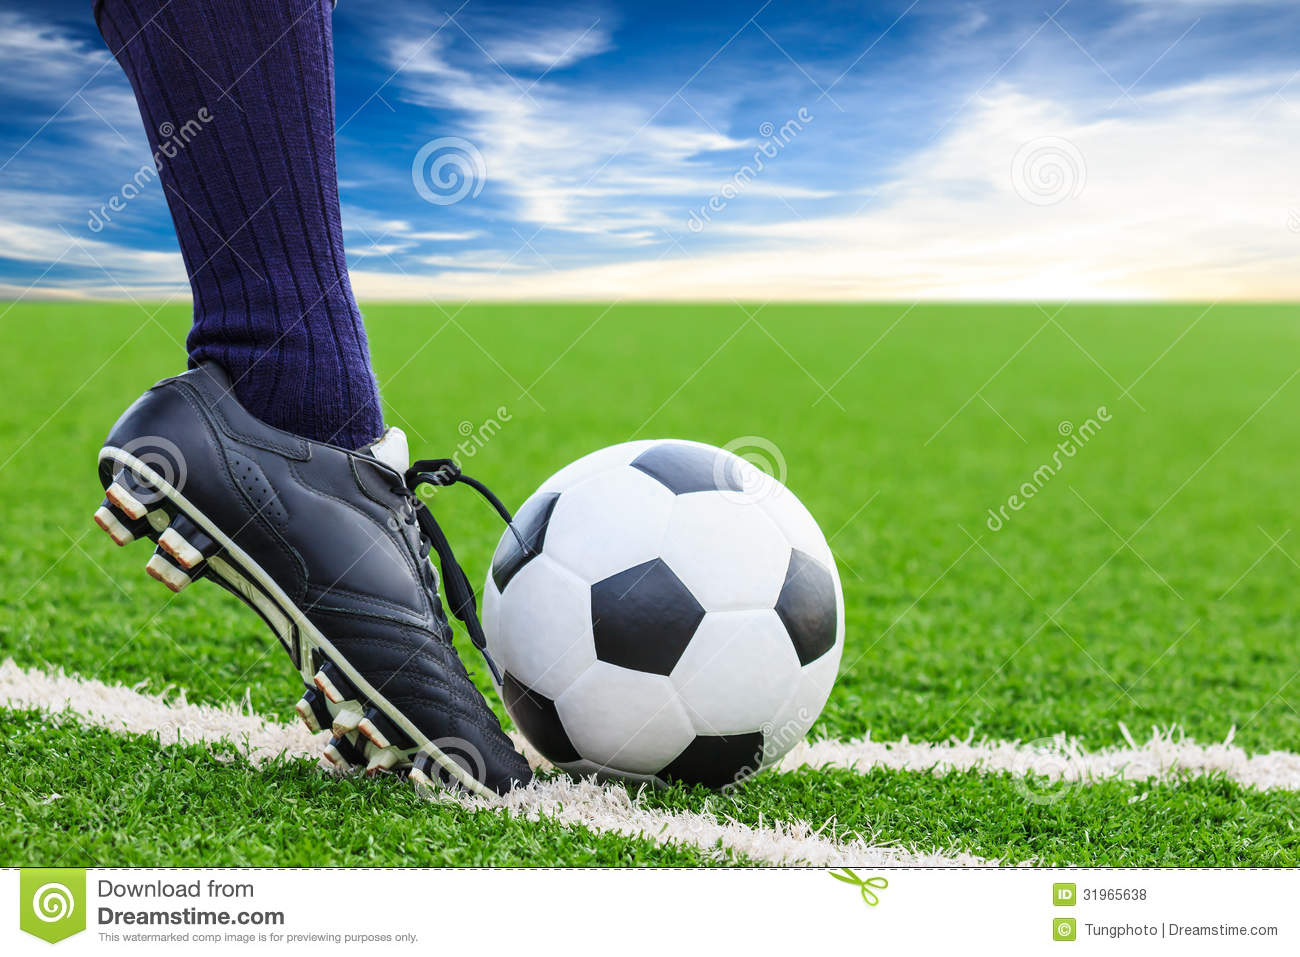 soccer the sport of kicking 09072013  anderson di, sidaway b coordination changes associated with practice of a soccer kick res q exerc sport 199465(2):93-99 chow jy, davids k, button c.